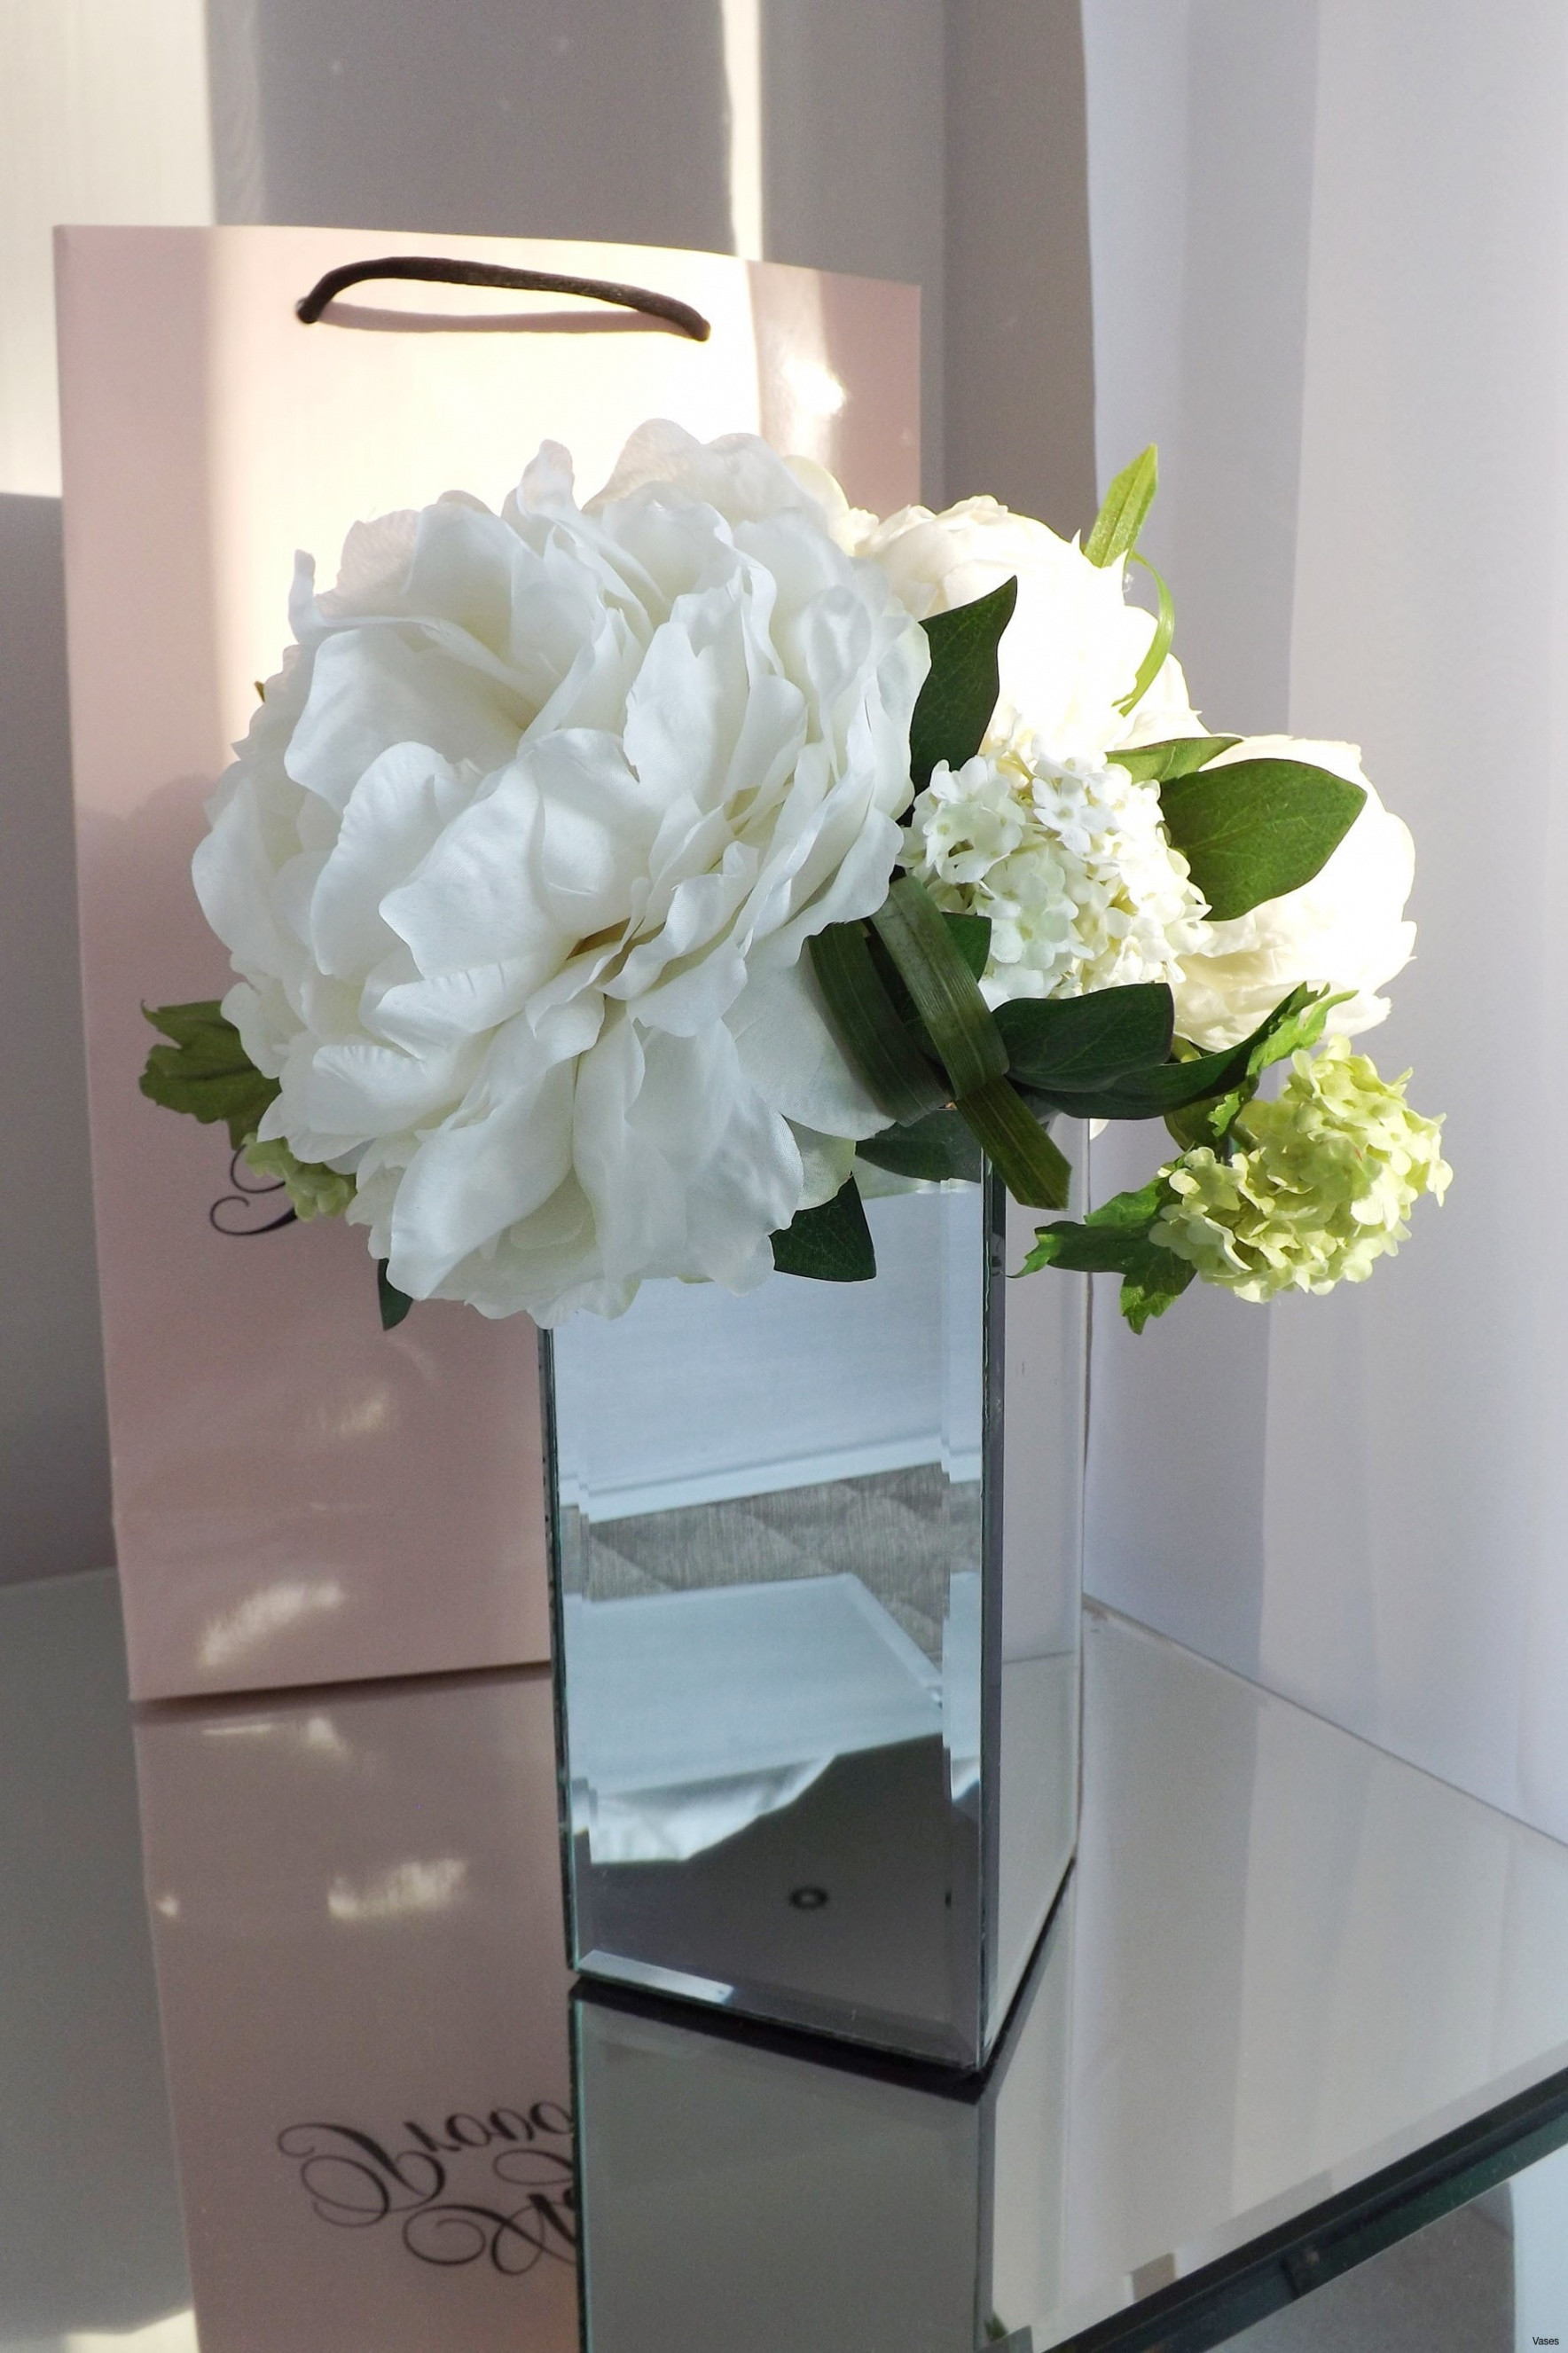 single flower glass vase of h vases wall hanging flower vase newspaper i 0d scheme wall scheme with image de metal vases 3h mirrored mosaic vase votivei 0d hobby lobby canada to